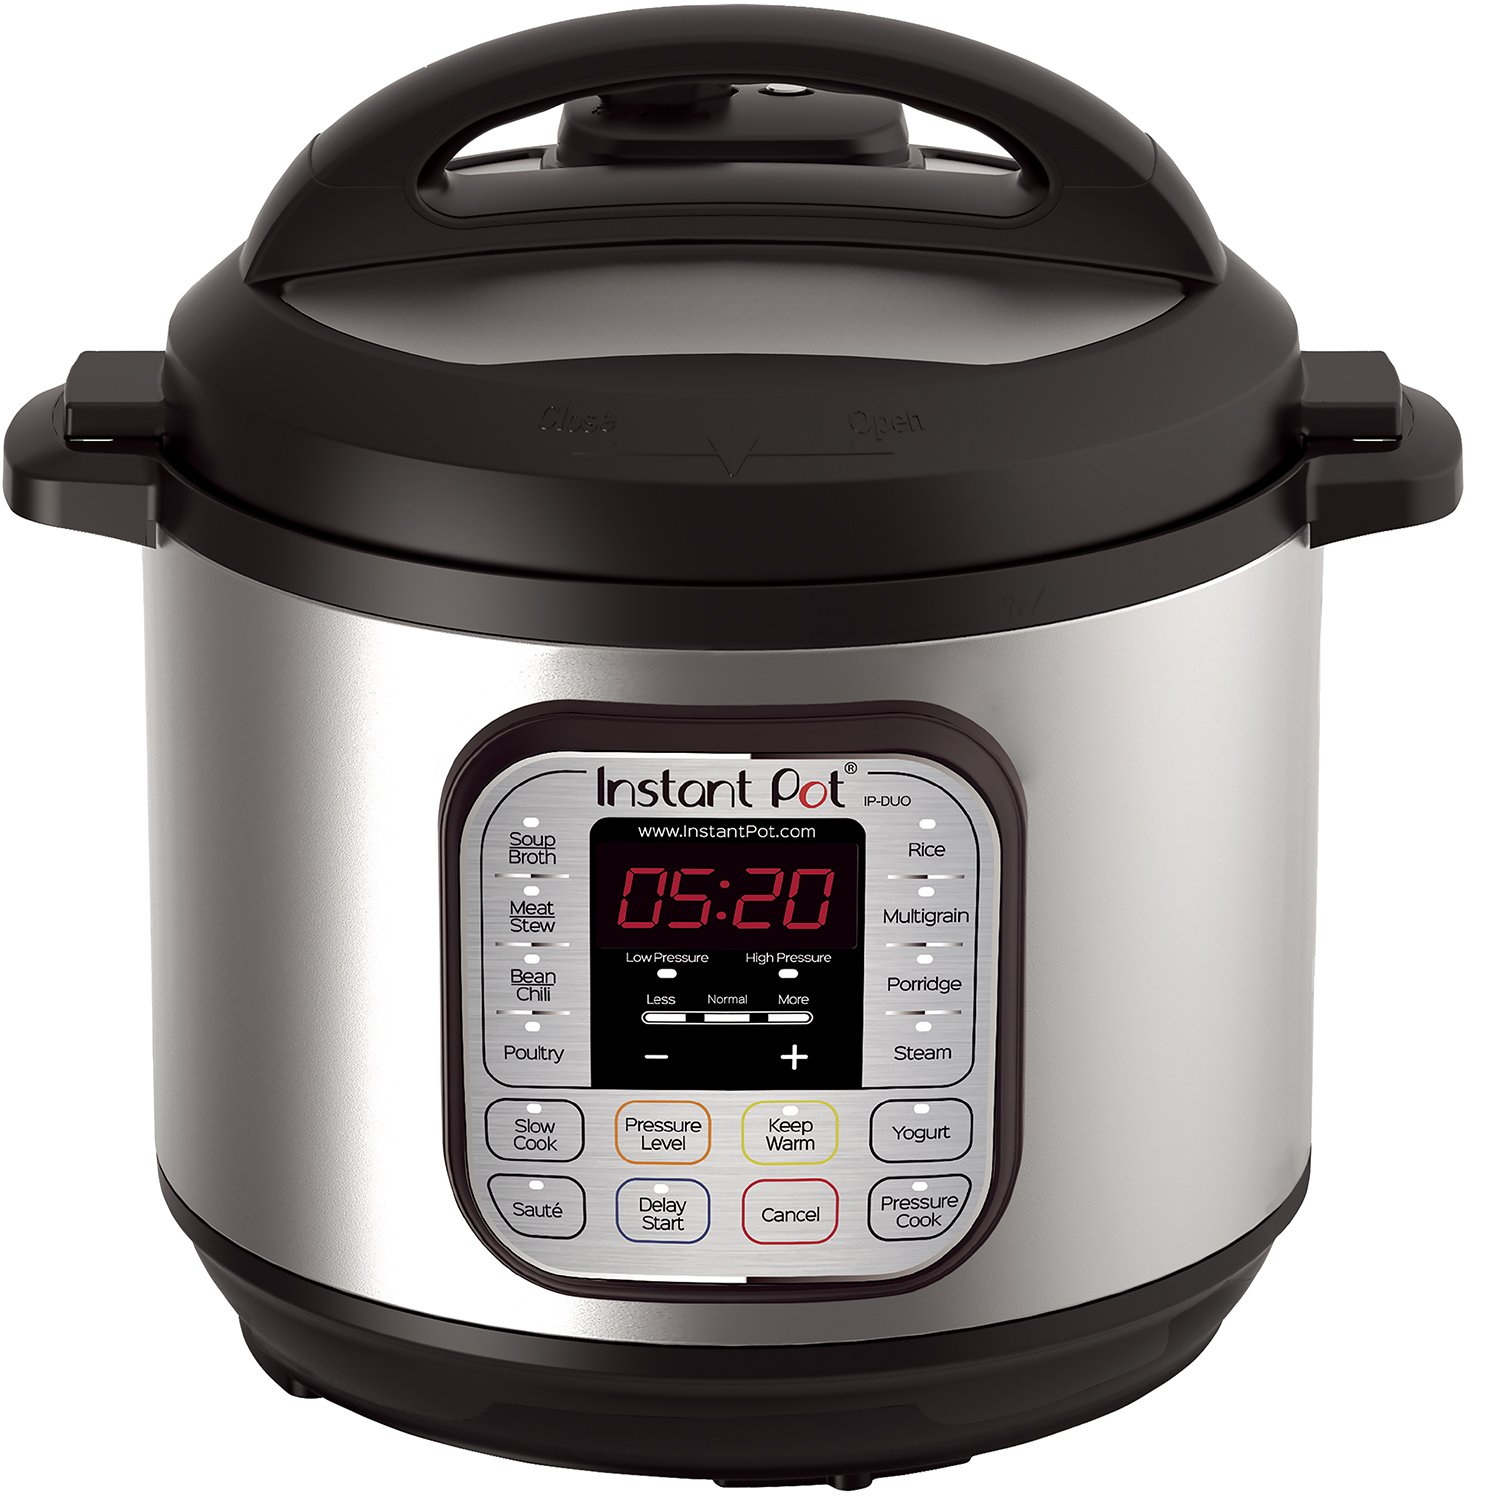 Instant Pot - From making yogurt to batch cooking meals, the Instant Pot is the one appliance I could not live without.